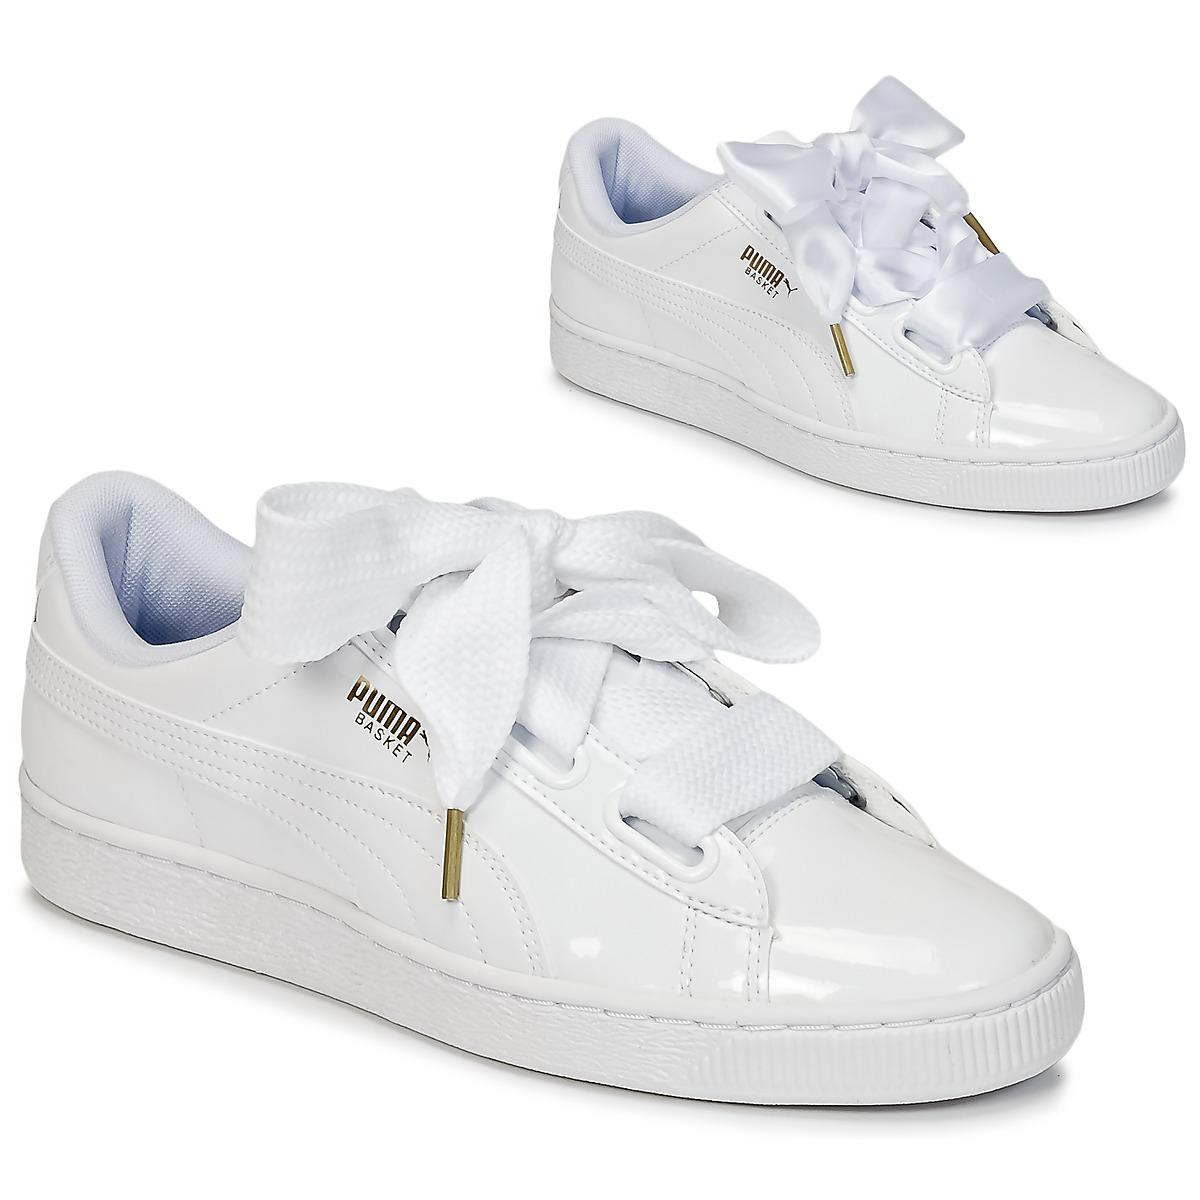 eef5c9808c2 PUMA Basket Heart Patent Wn s Women s Shoes (trainers) In White in ...